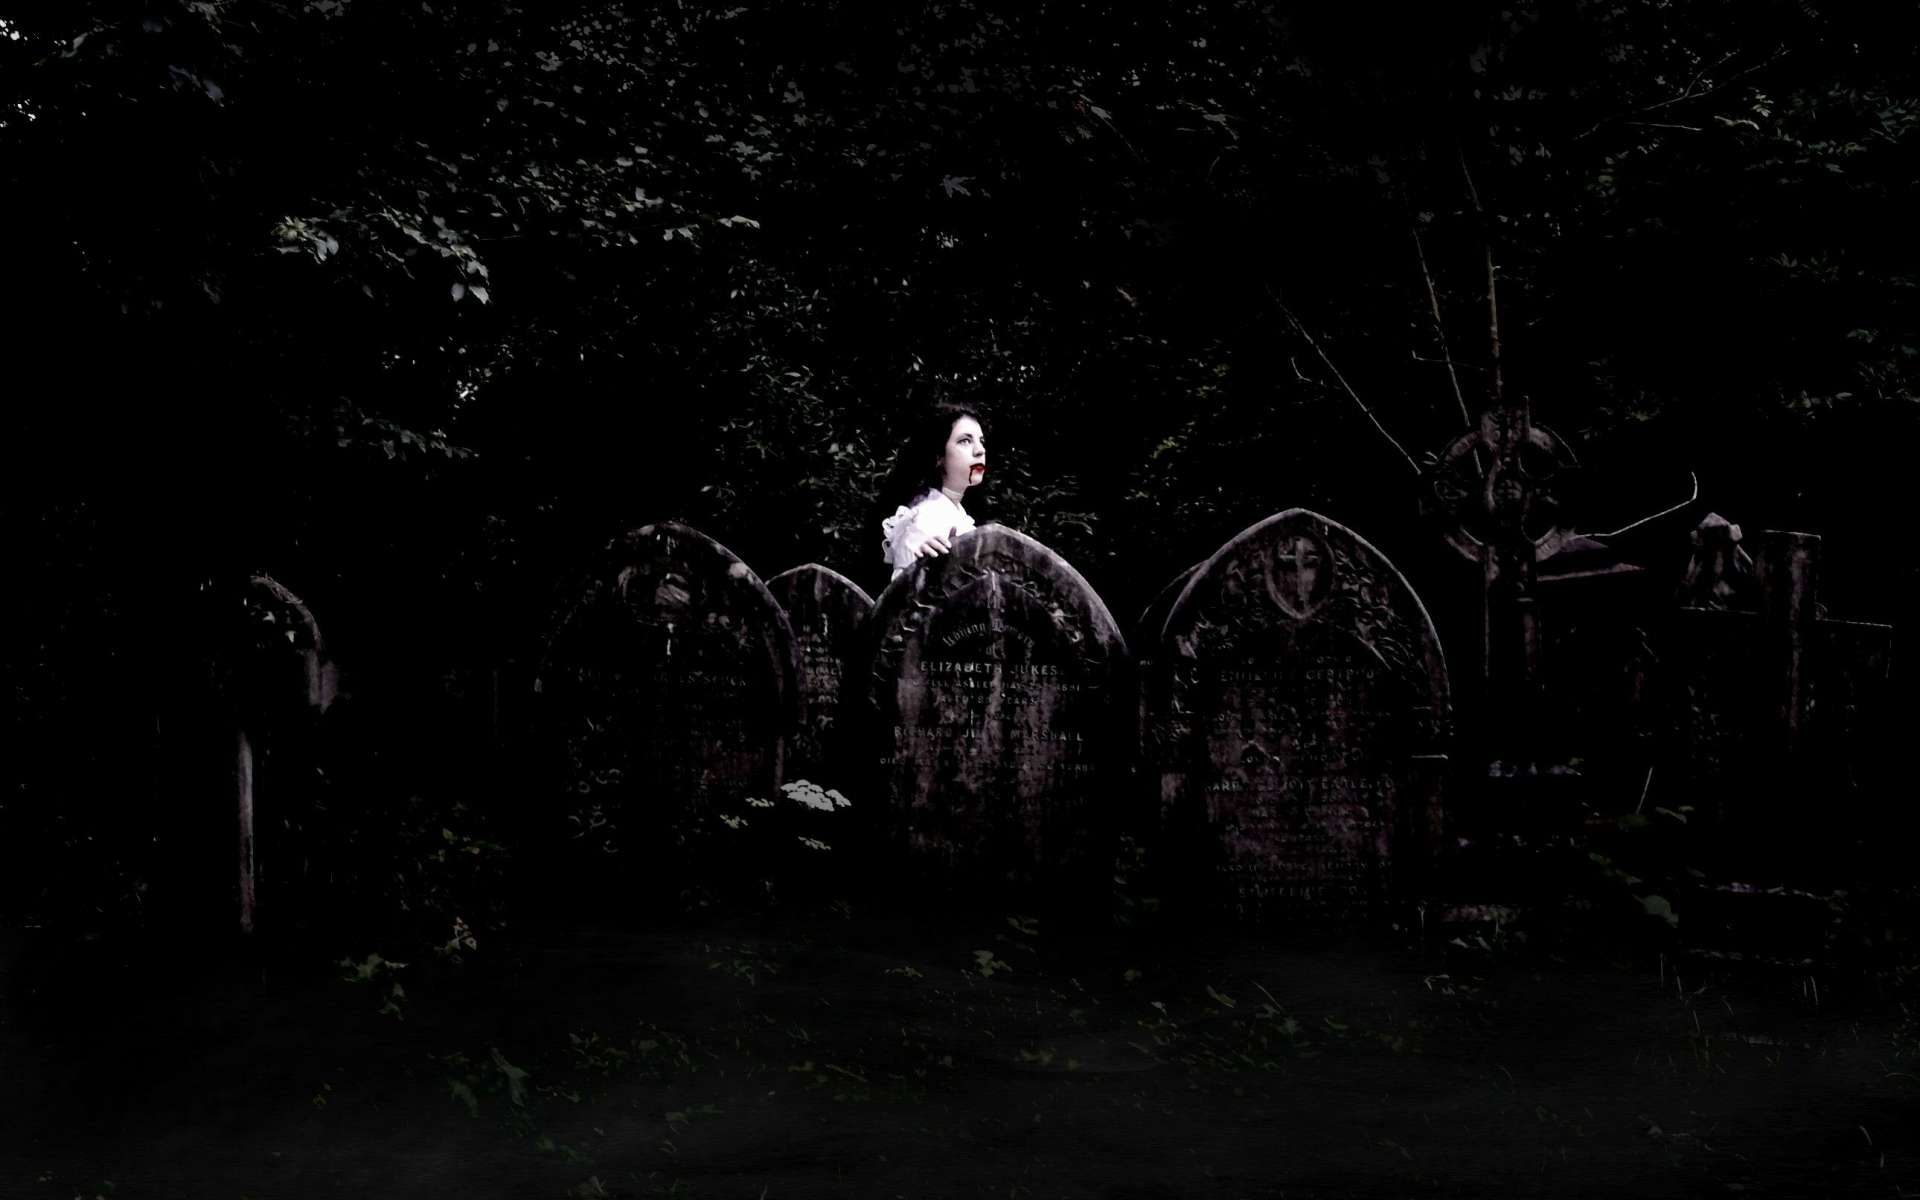 Dark horror fantasy gothic vampires cemetery grave art blood wallpaper 1920x1200